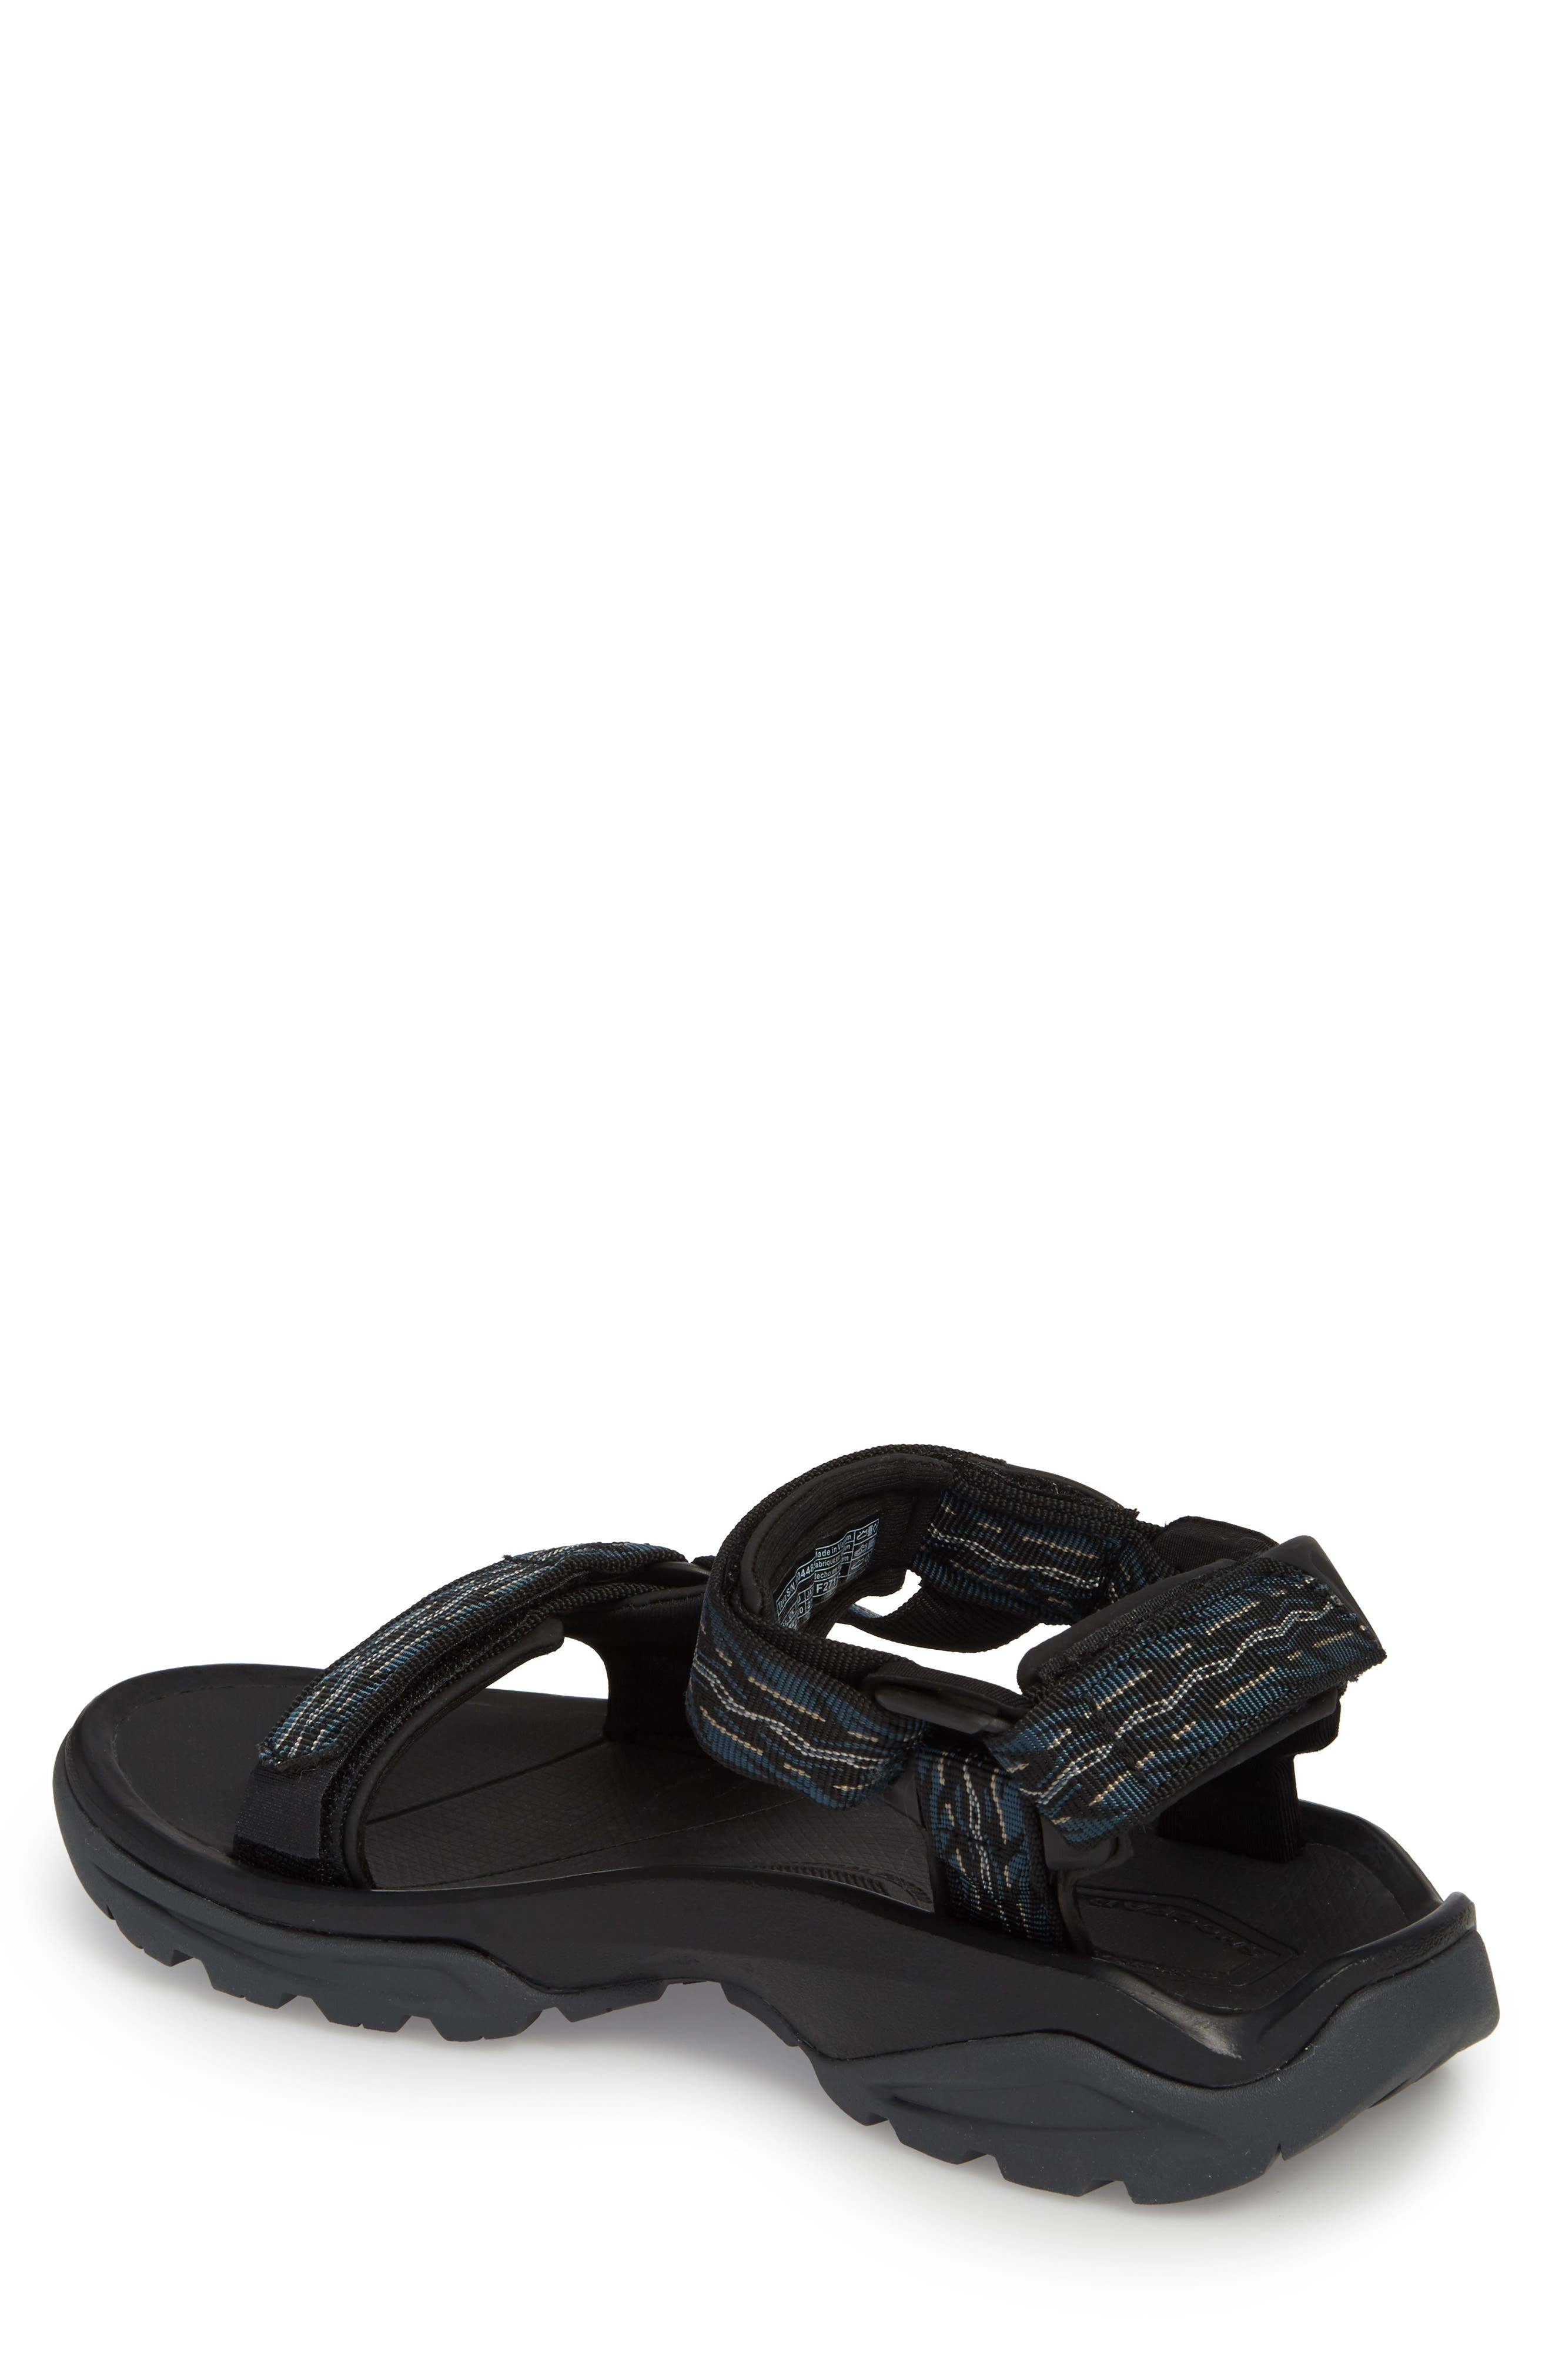 Terra Fi 4 Sport Sandal,                             Alternate thumbnail 2, color,                             MIDNIGHT BLUE NYLON